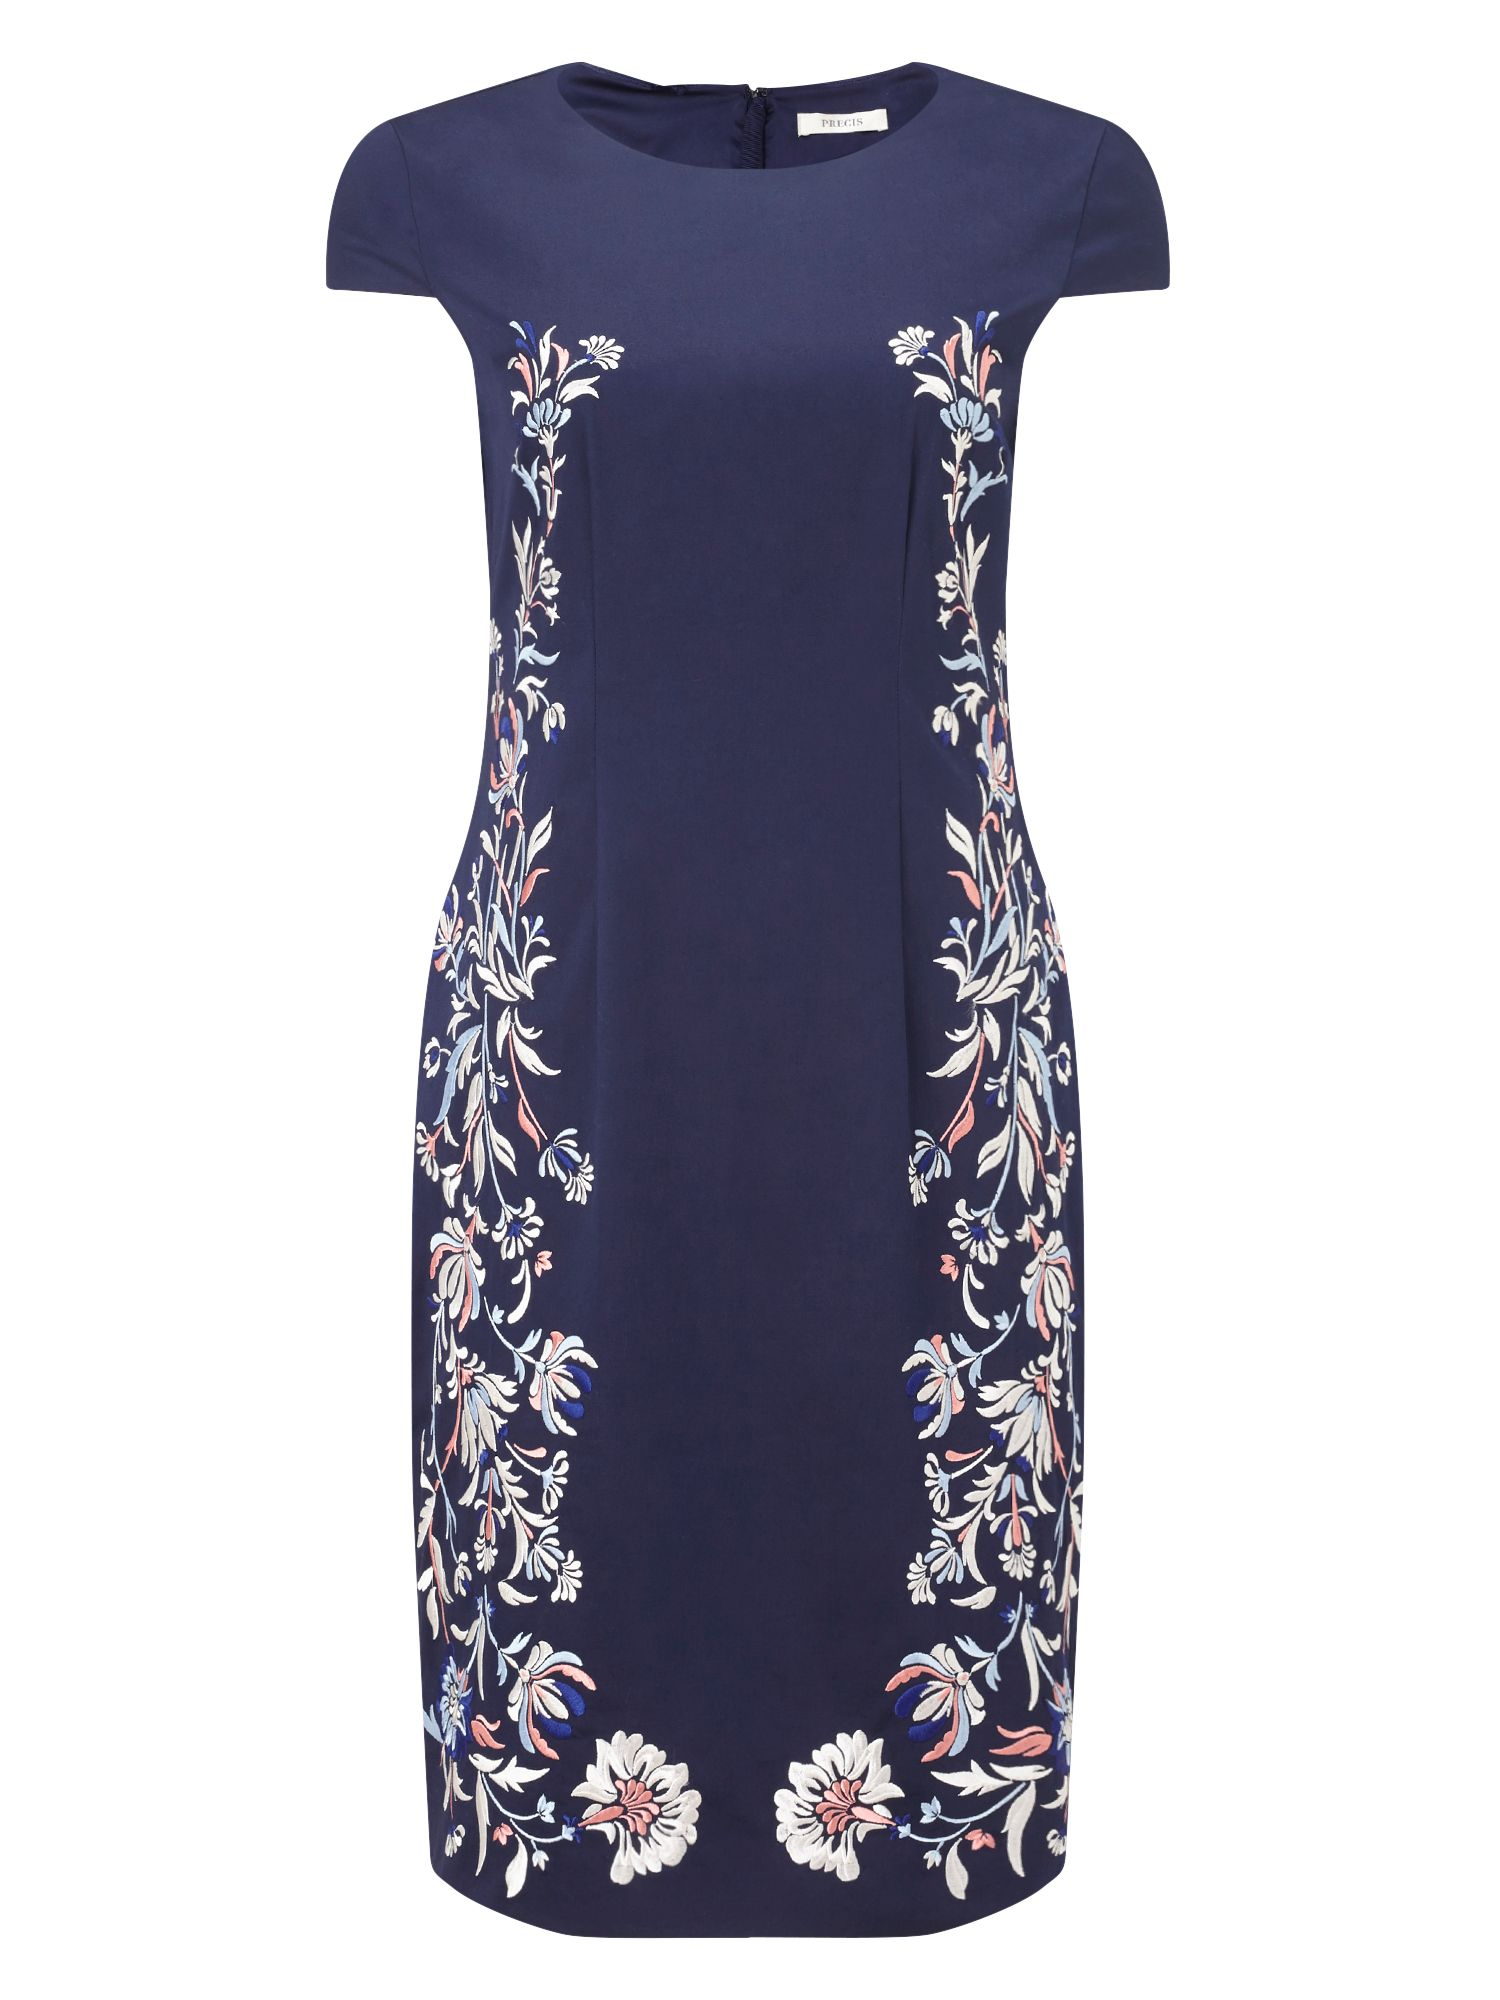 Precis Petite Petite Adele Embroidered Dress, Multi-Coloured